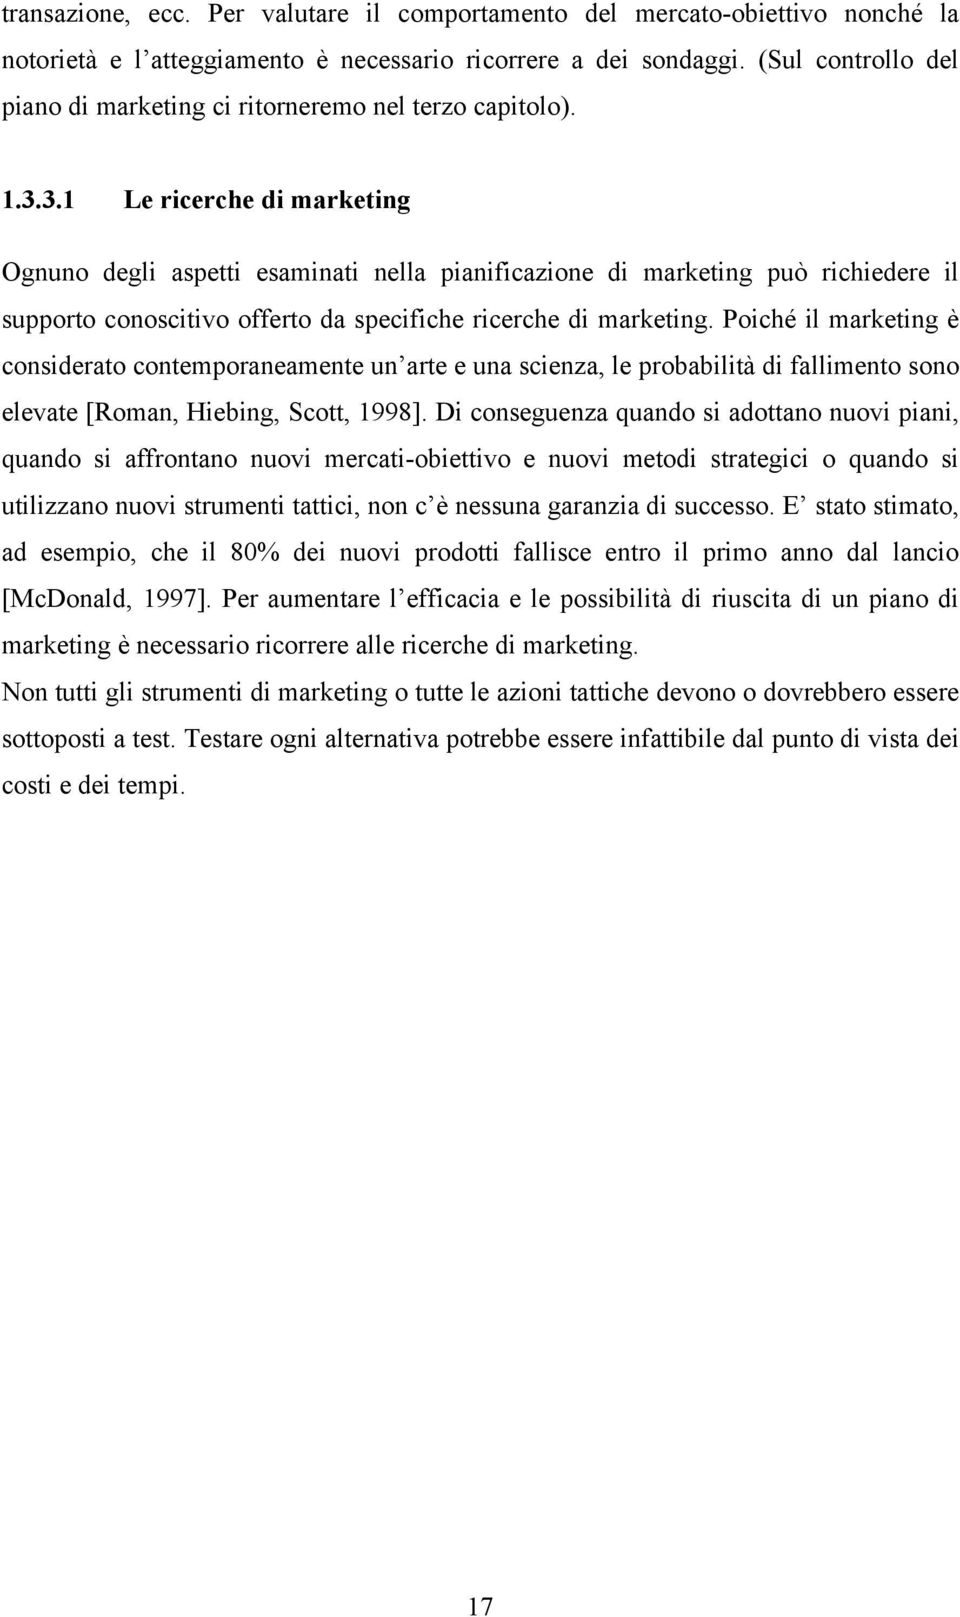 3.1 Le ricerche di marketing Ognuno degli aspetti esaminati nella pianificazione di marketing può richiedere il supporto conoscitivo offerto da specifiche ricerche di marketing.